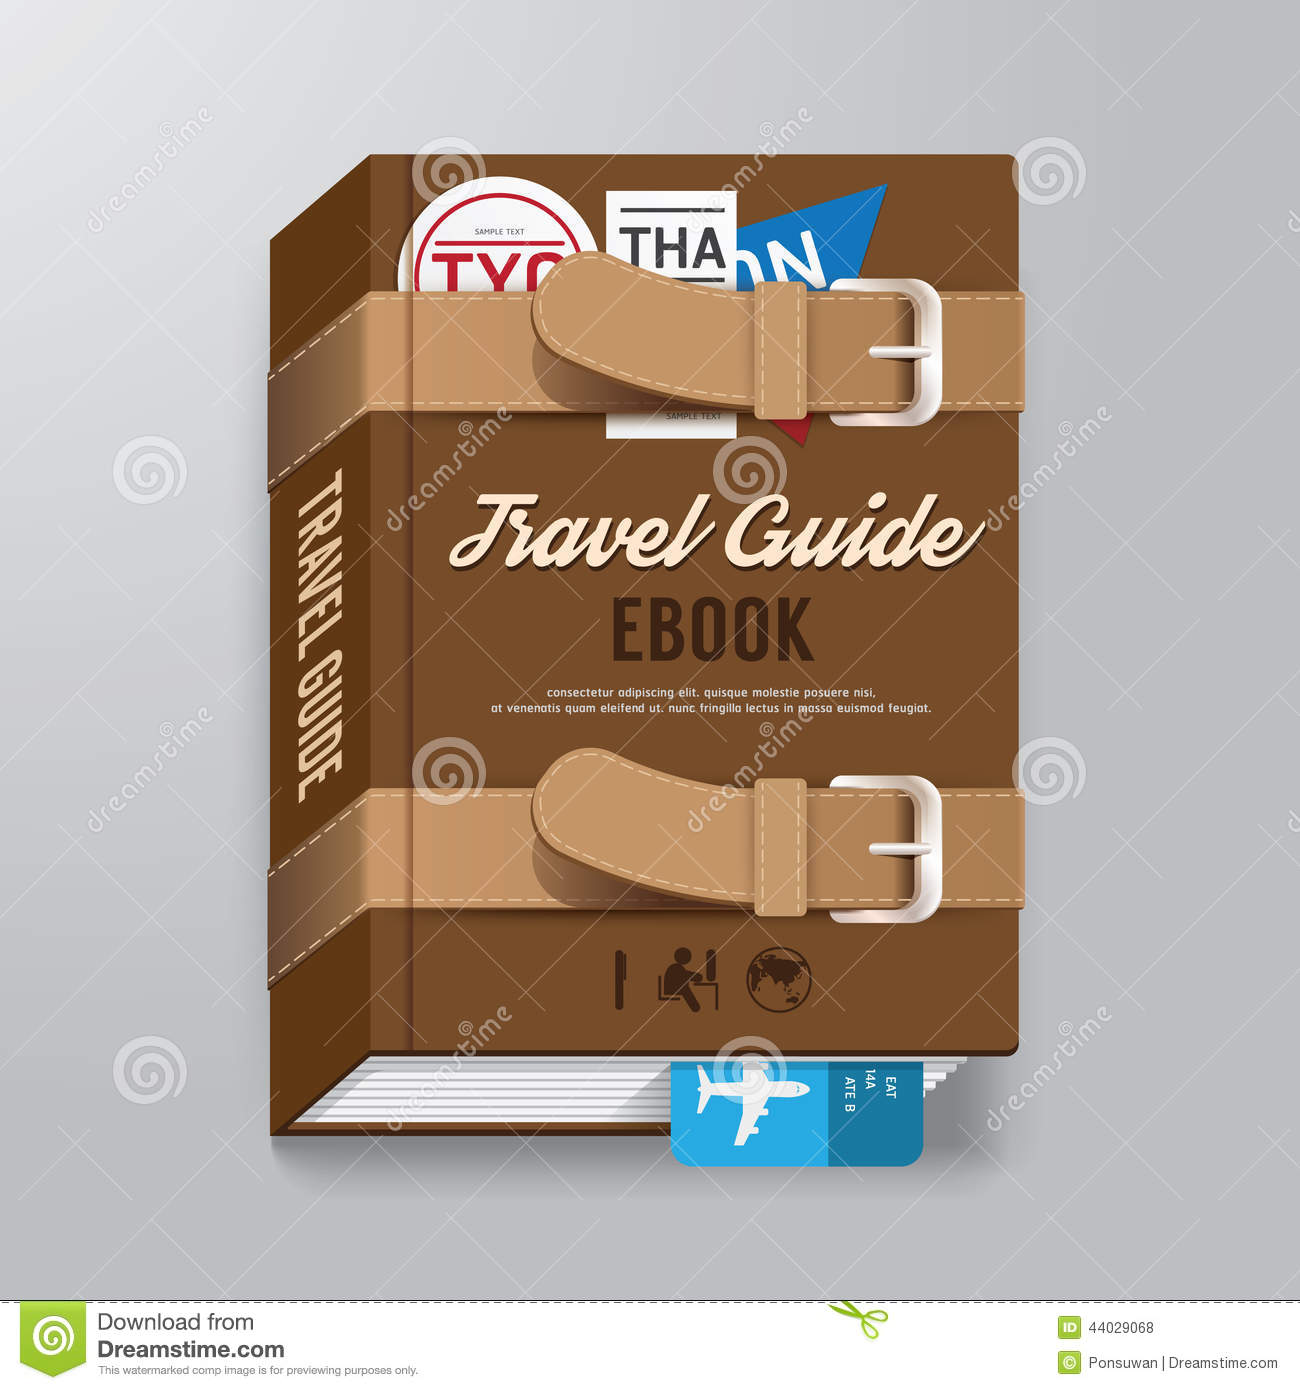 book cover template illustrator - book cover travel guide design luggage concept template